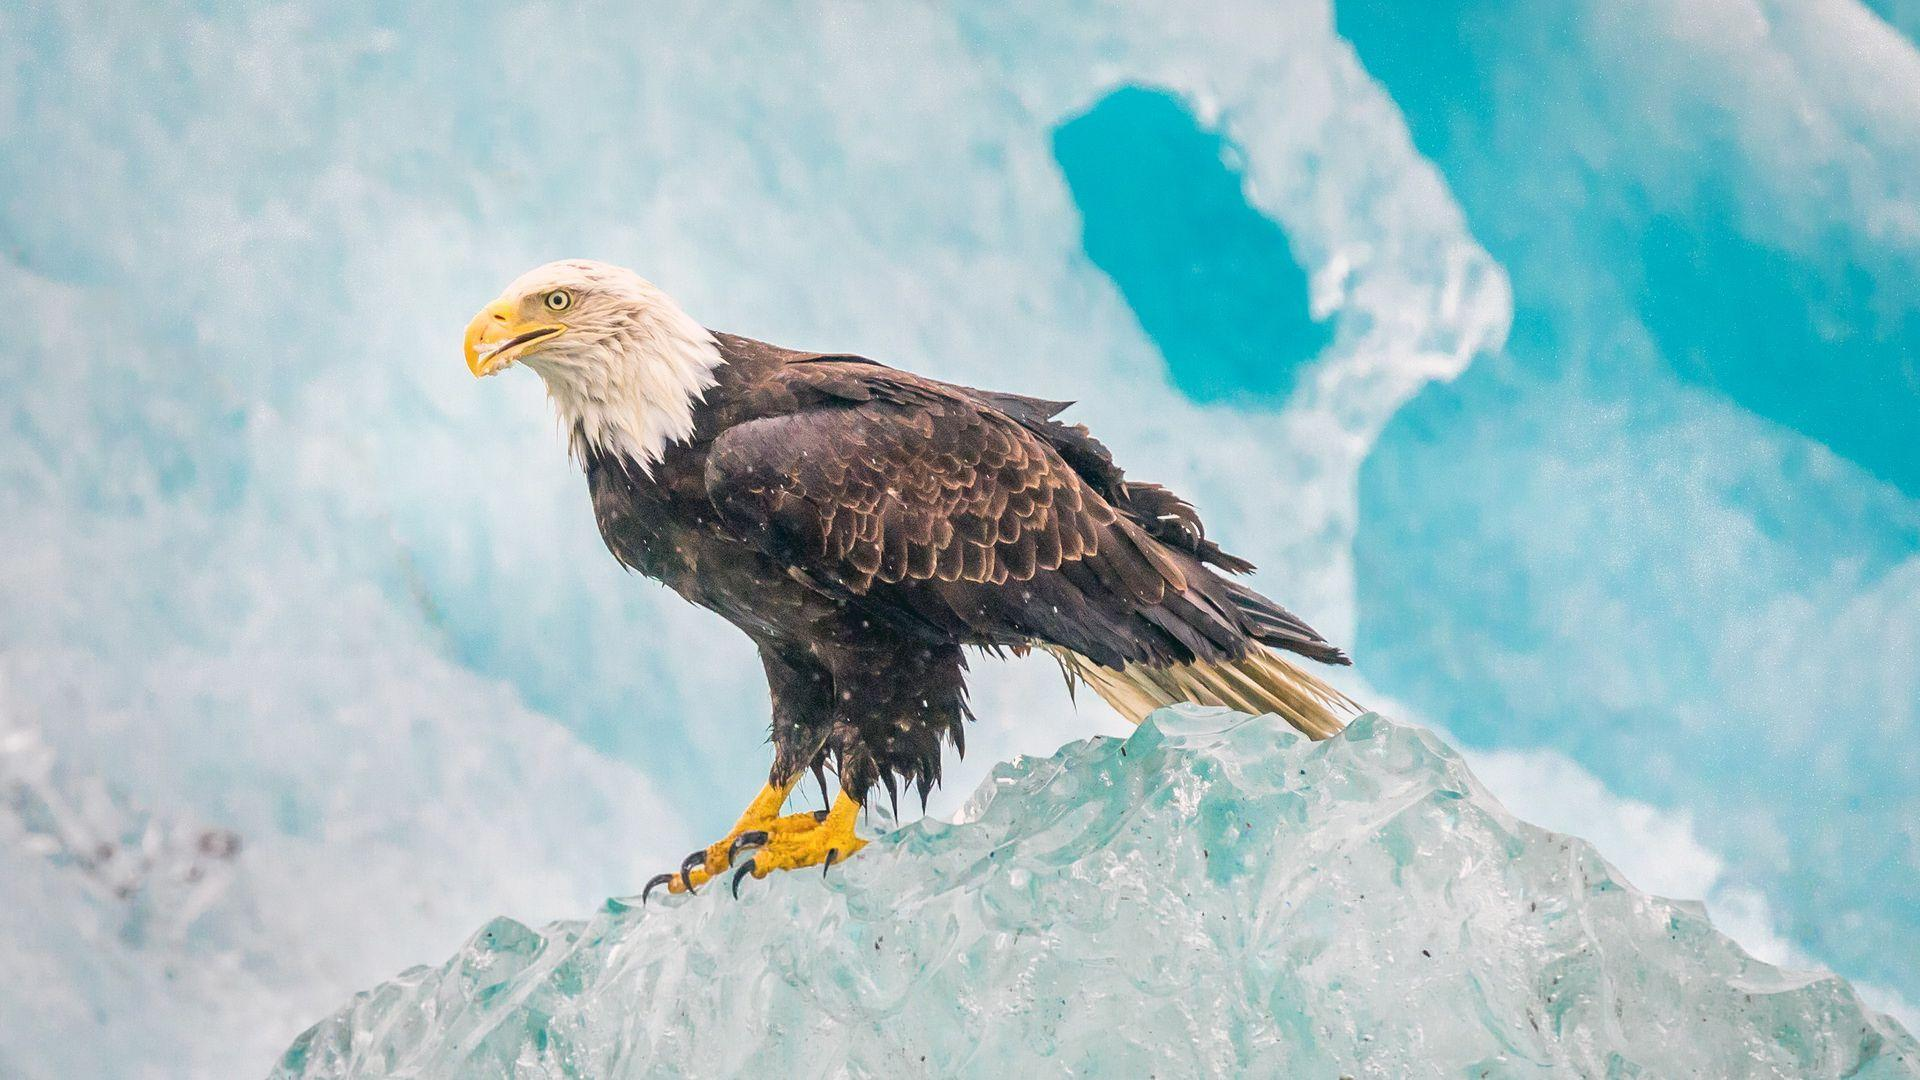 bald eagle wallpaper hd 004